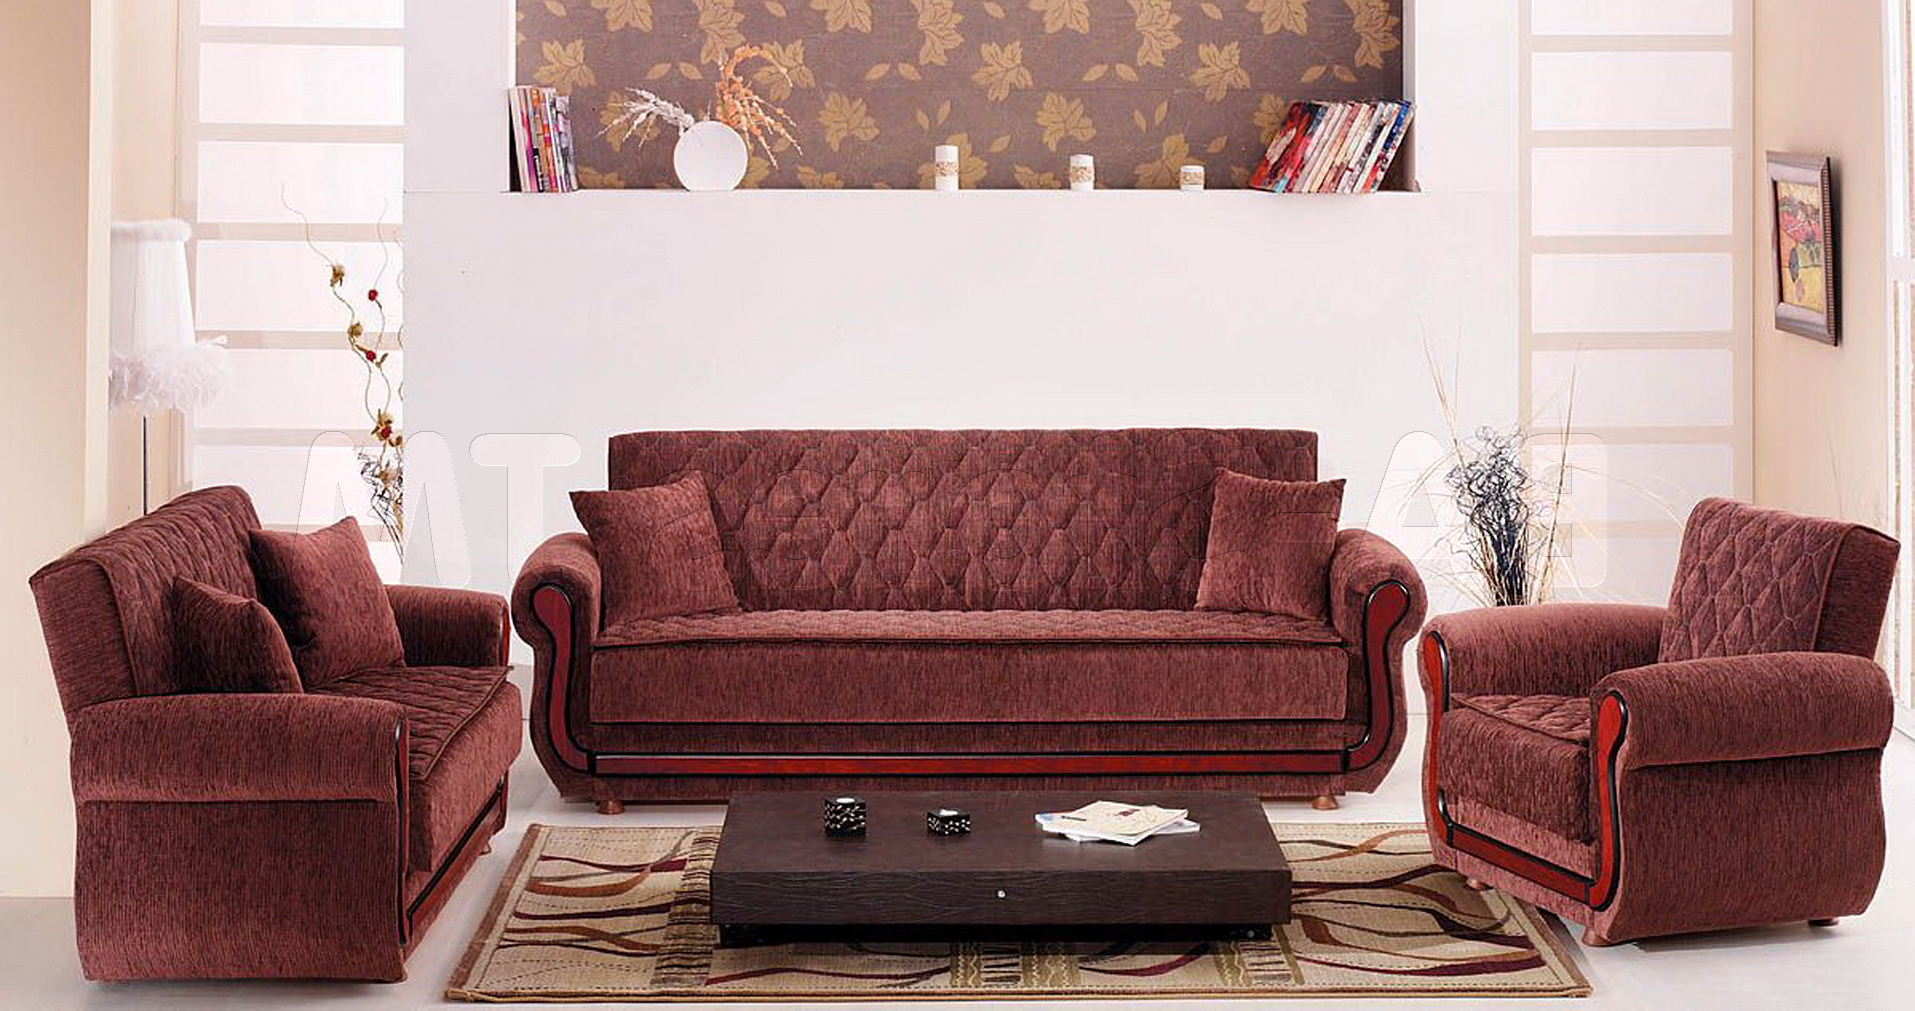 2019 Beautiful Sofa And Chair Set 20 For Your Modern Sofa Ideas With Sofa With Sofa And Chair Set (Gallery 6 of 20)